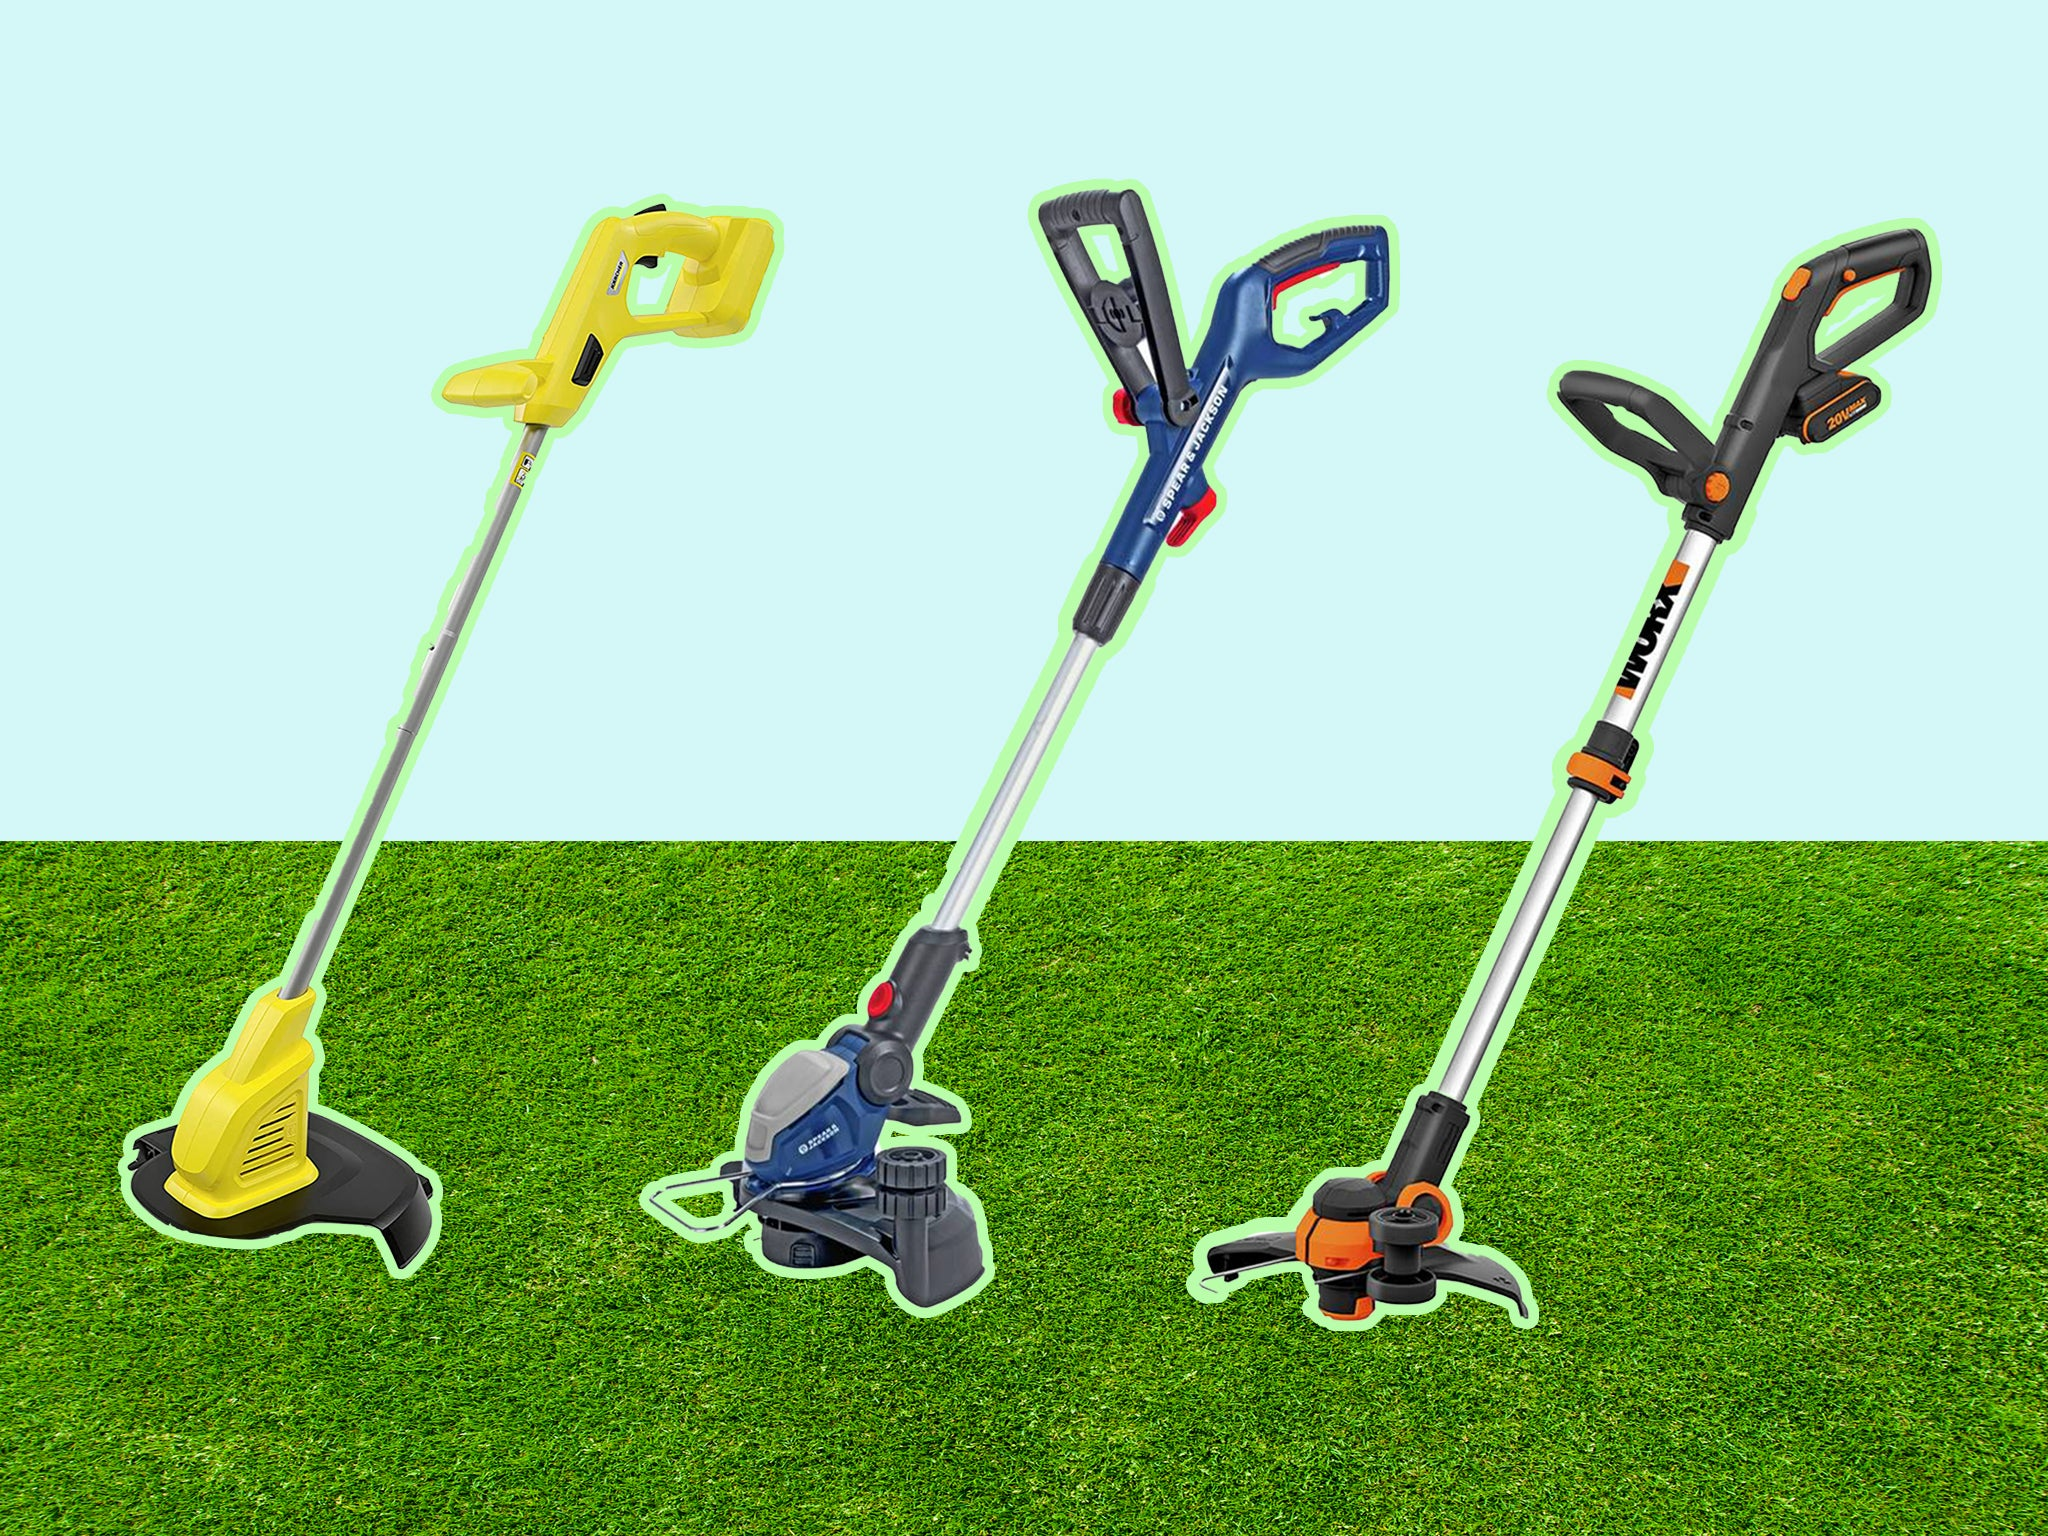 Best grass trimmer 2020: Cordless, petrol or electric machines